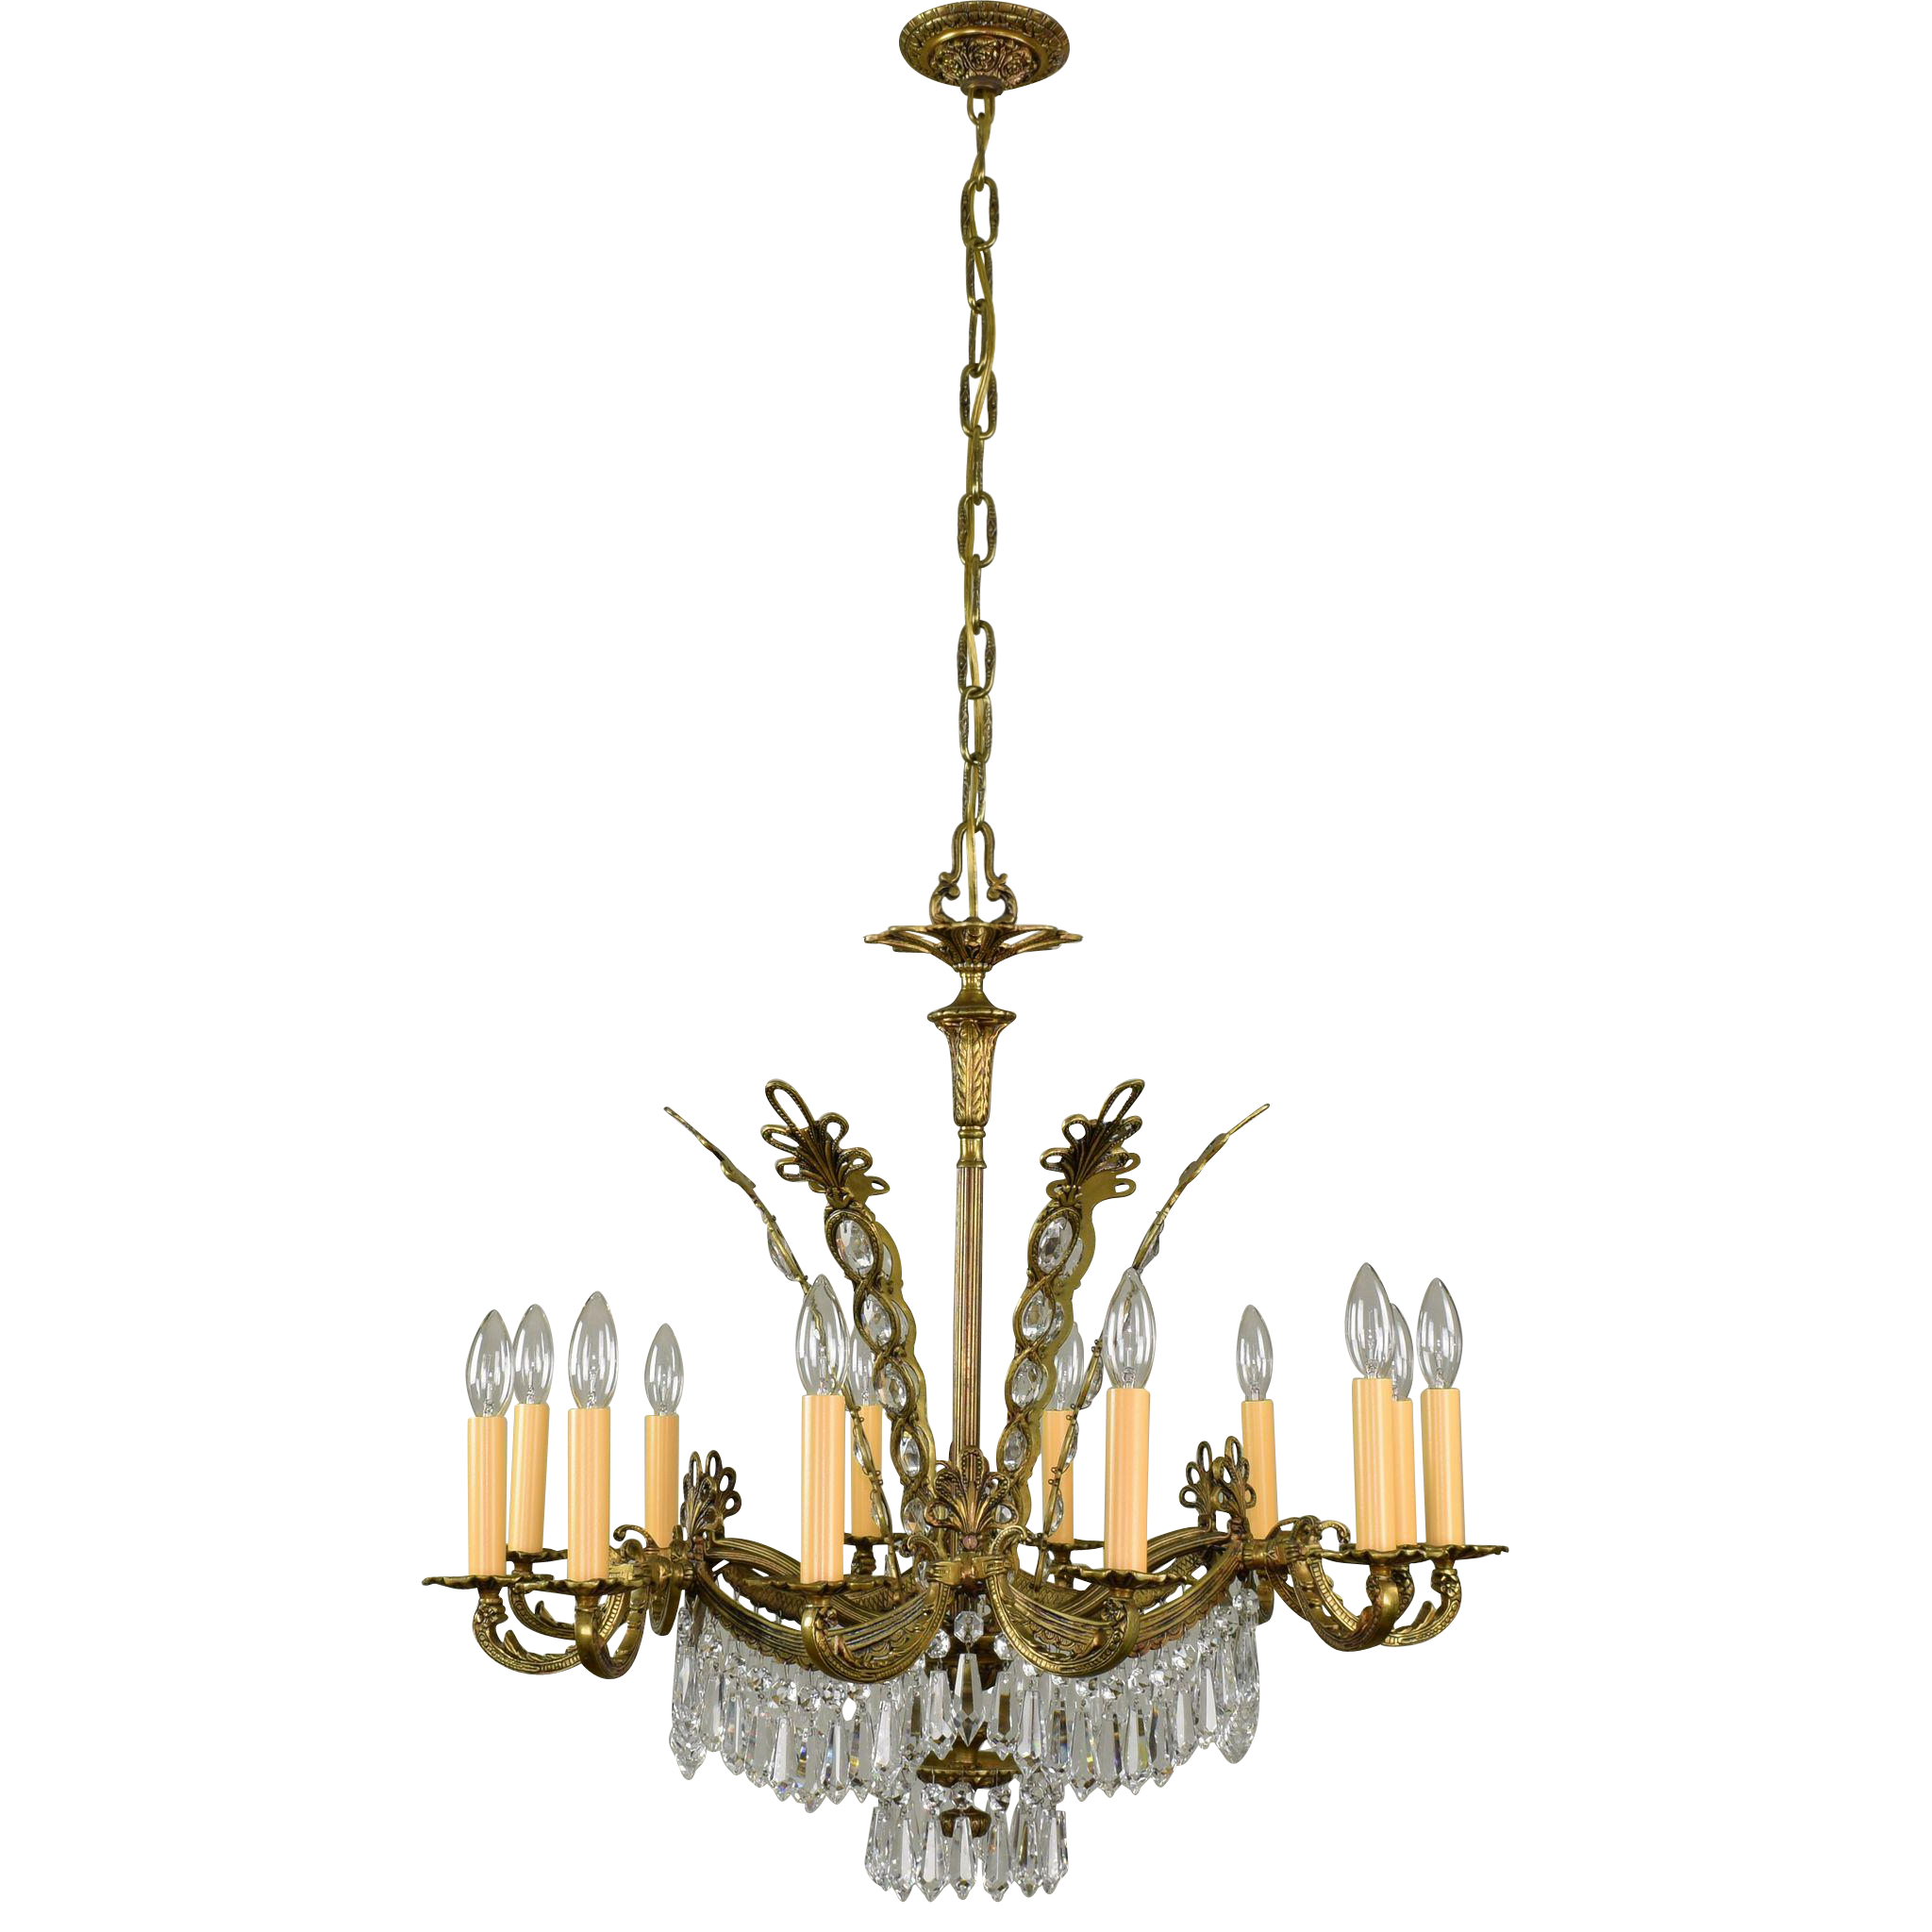 Vintage French Brass and Crystal Chandelier - 12 Lights